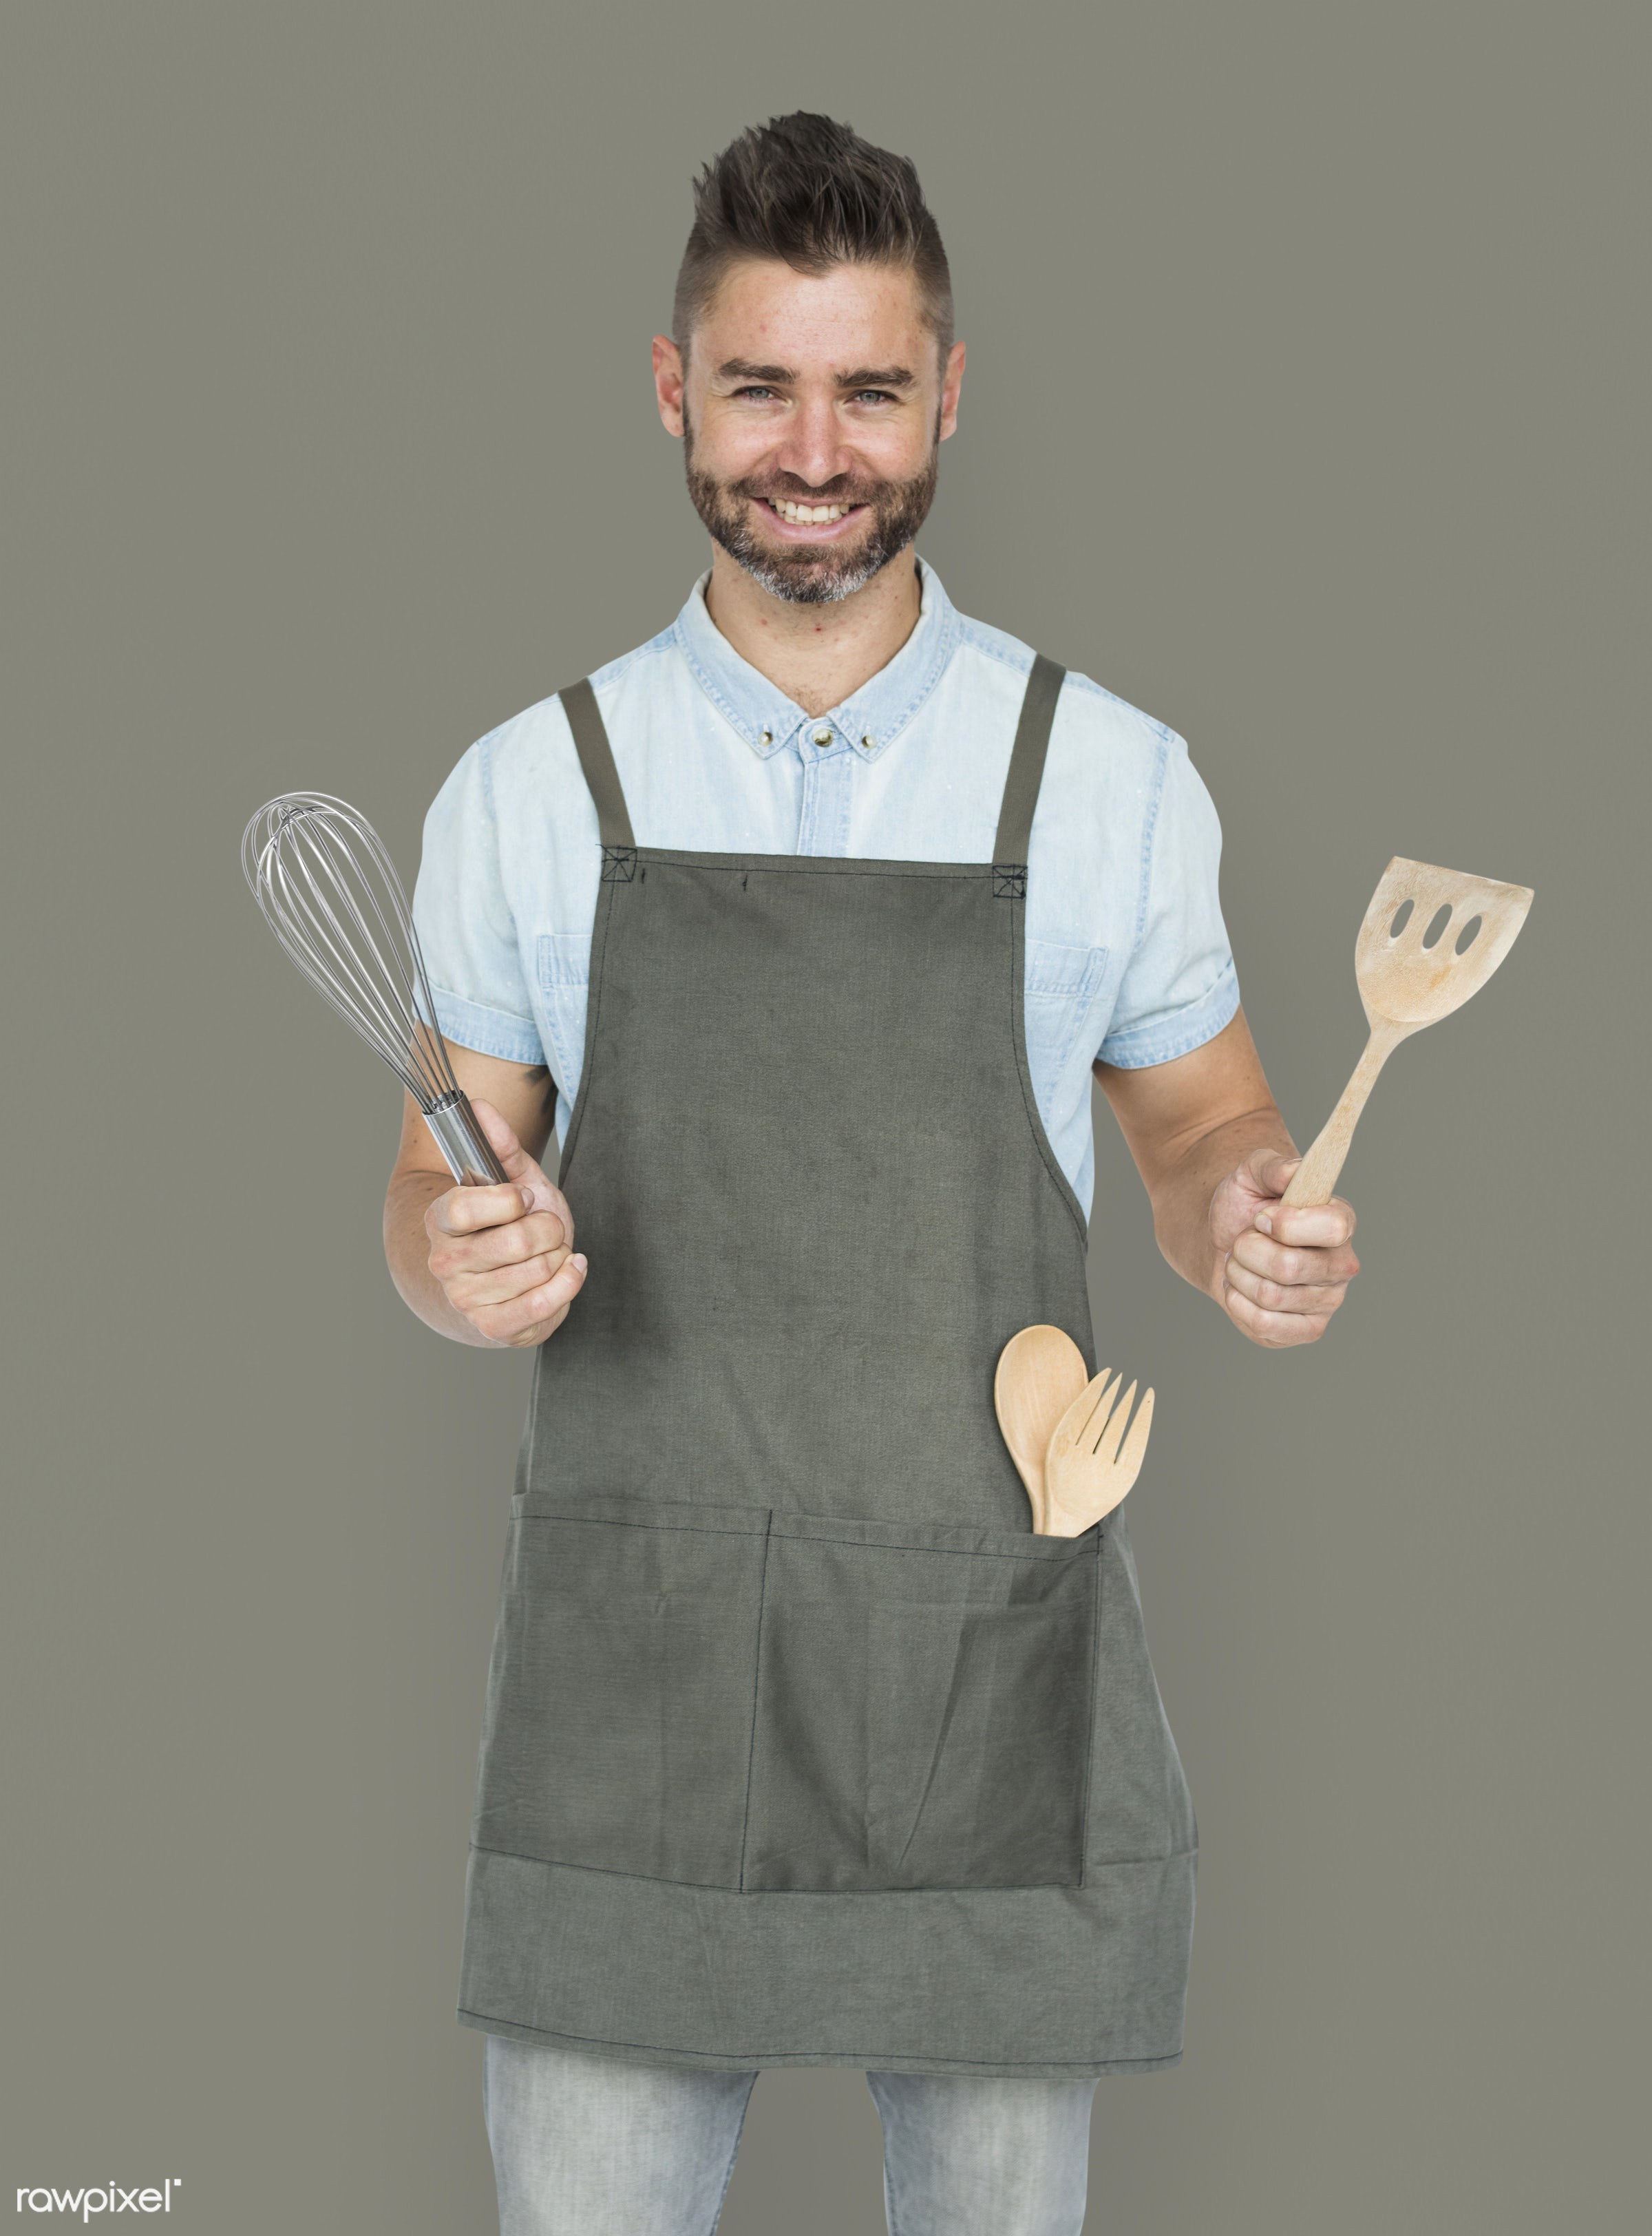 studio, person, model, race, people, style, solo, casual, lifestyle, cooking, man, isolated, guy, male, gesture, posing,...